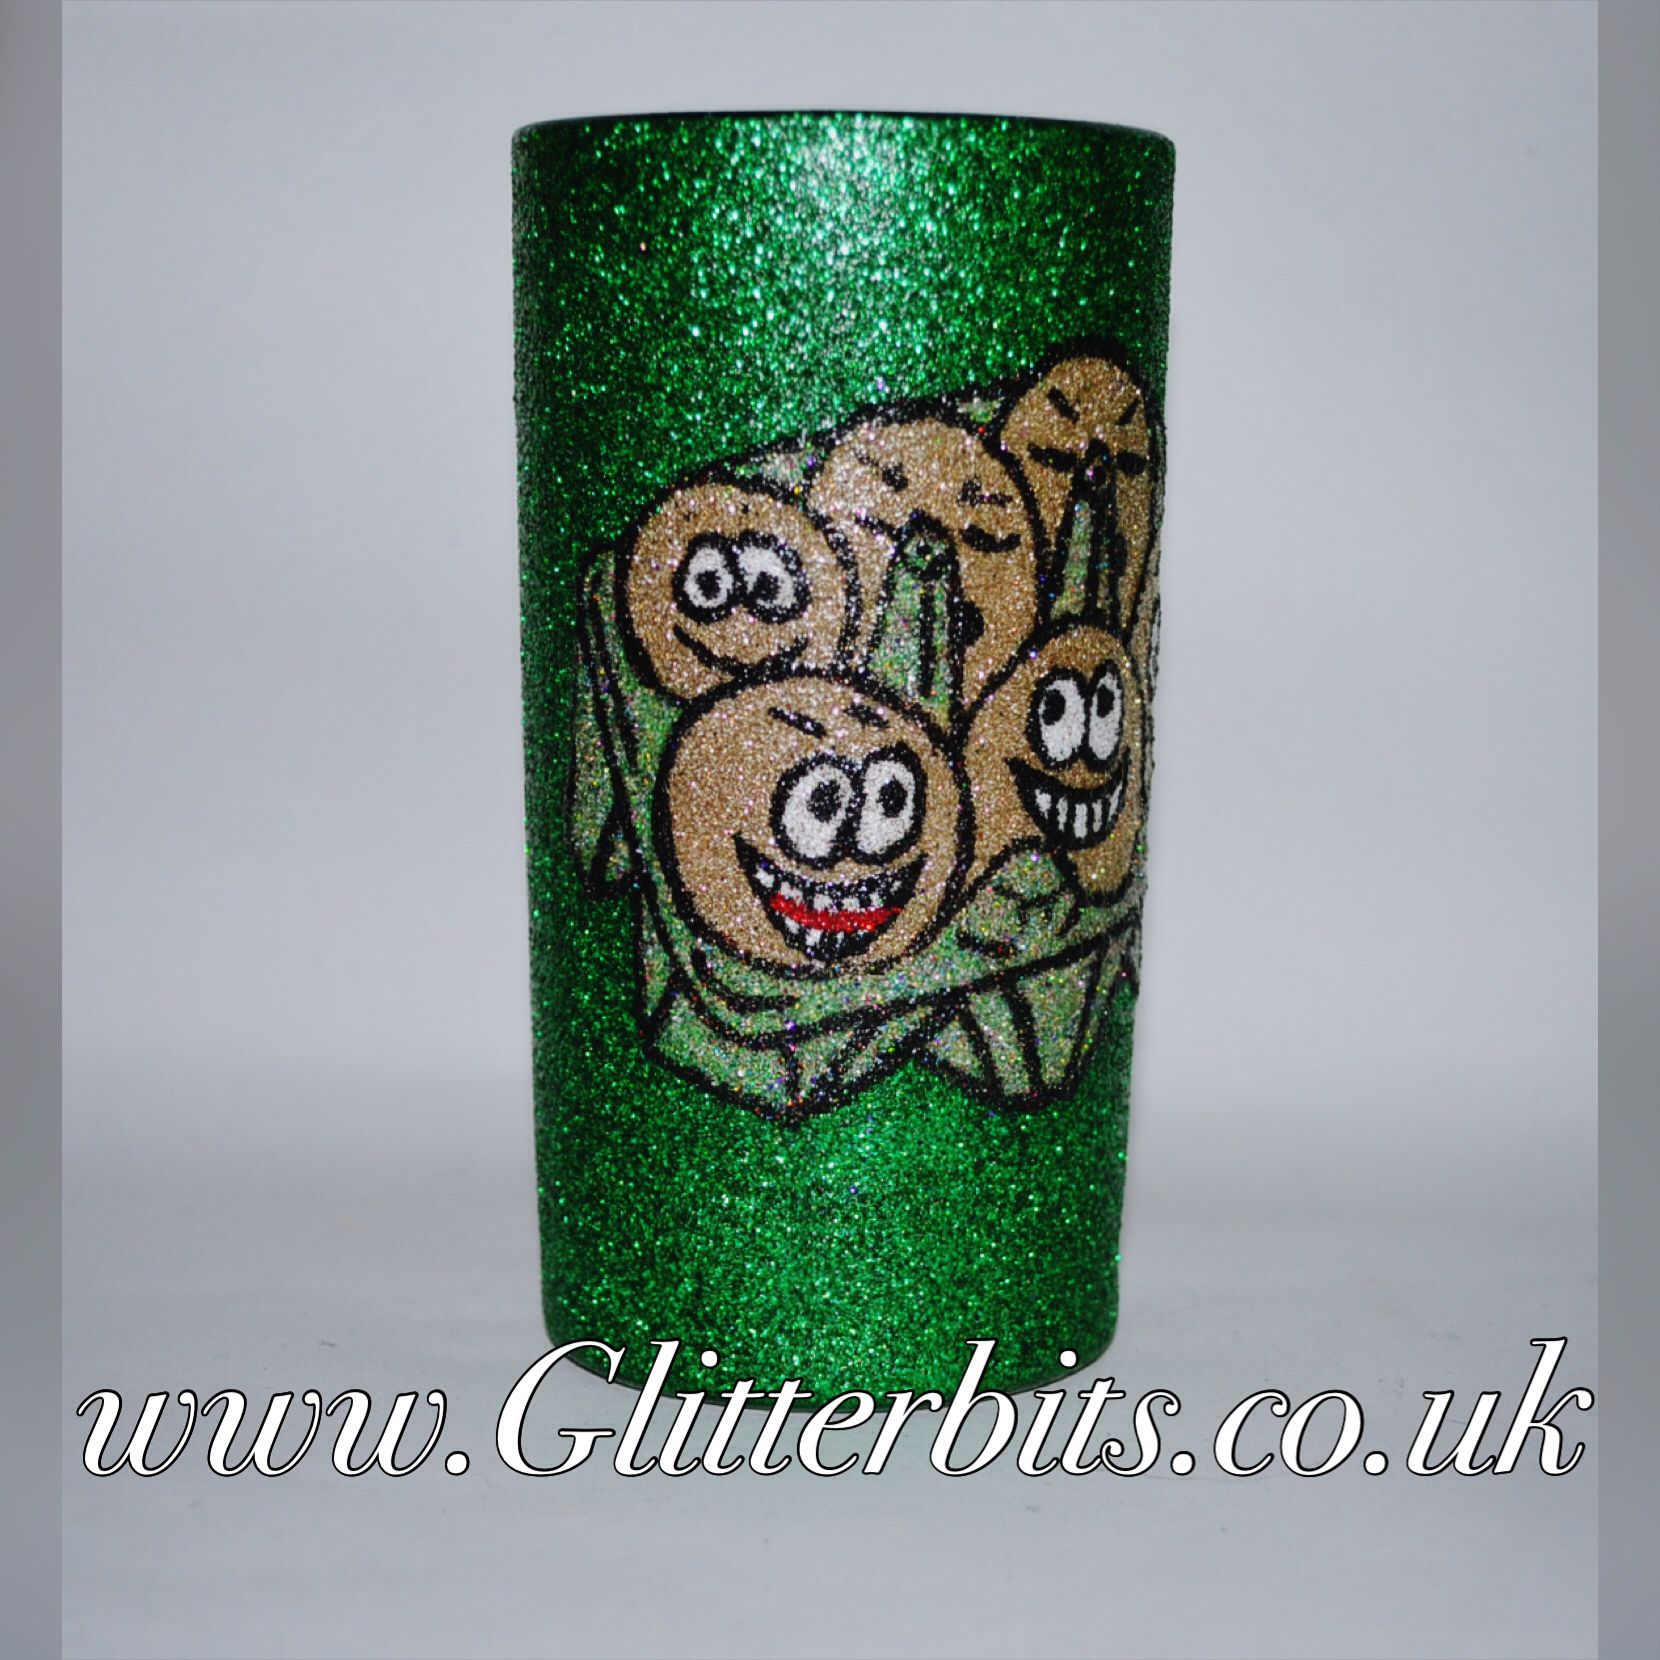 Green handmade Easter egg box tumbler glass.